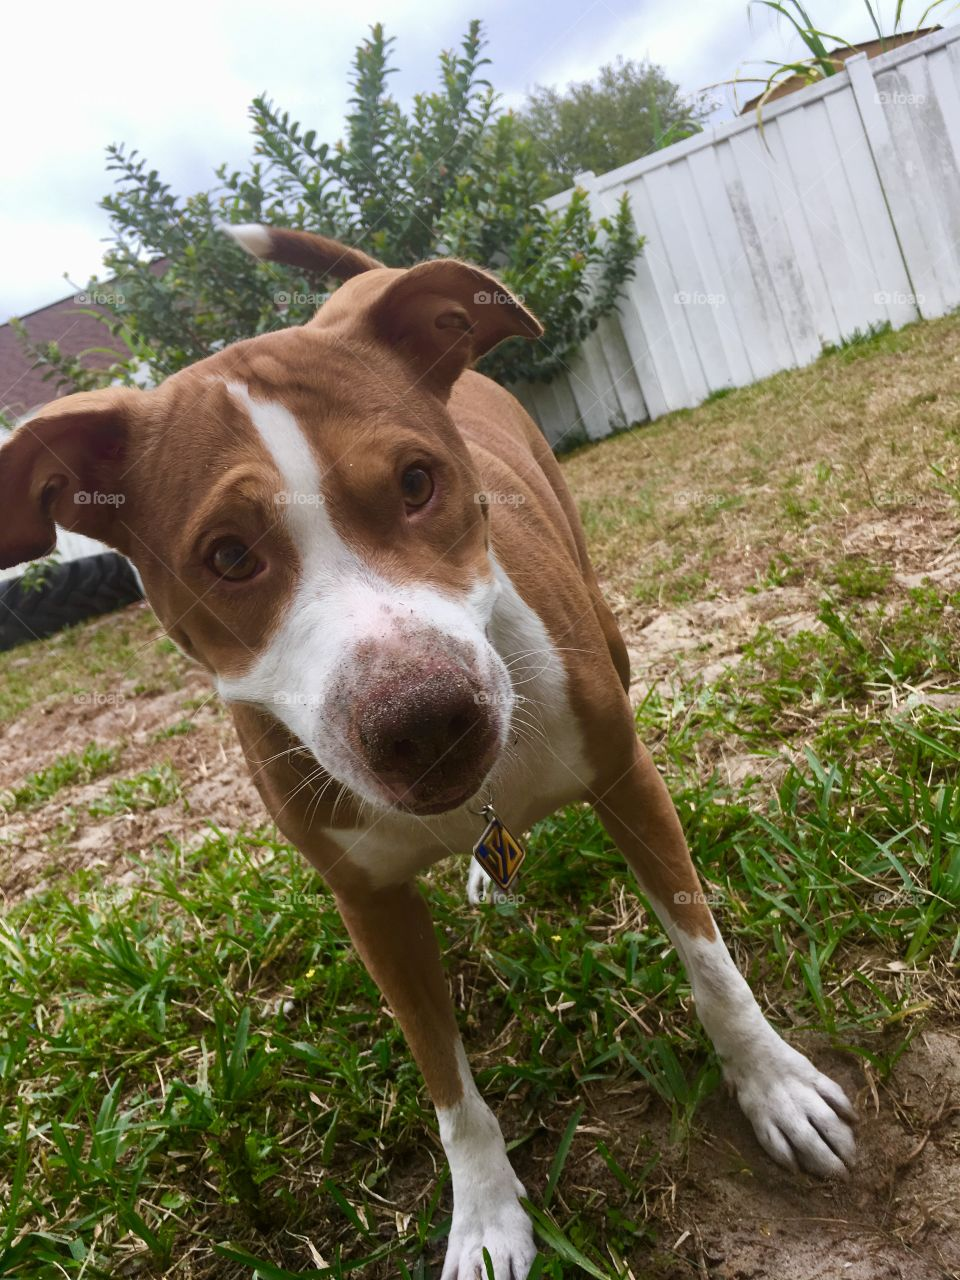 Rescue pitbull all dirty from playing ball